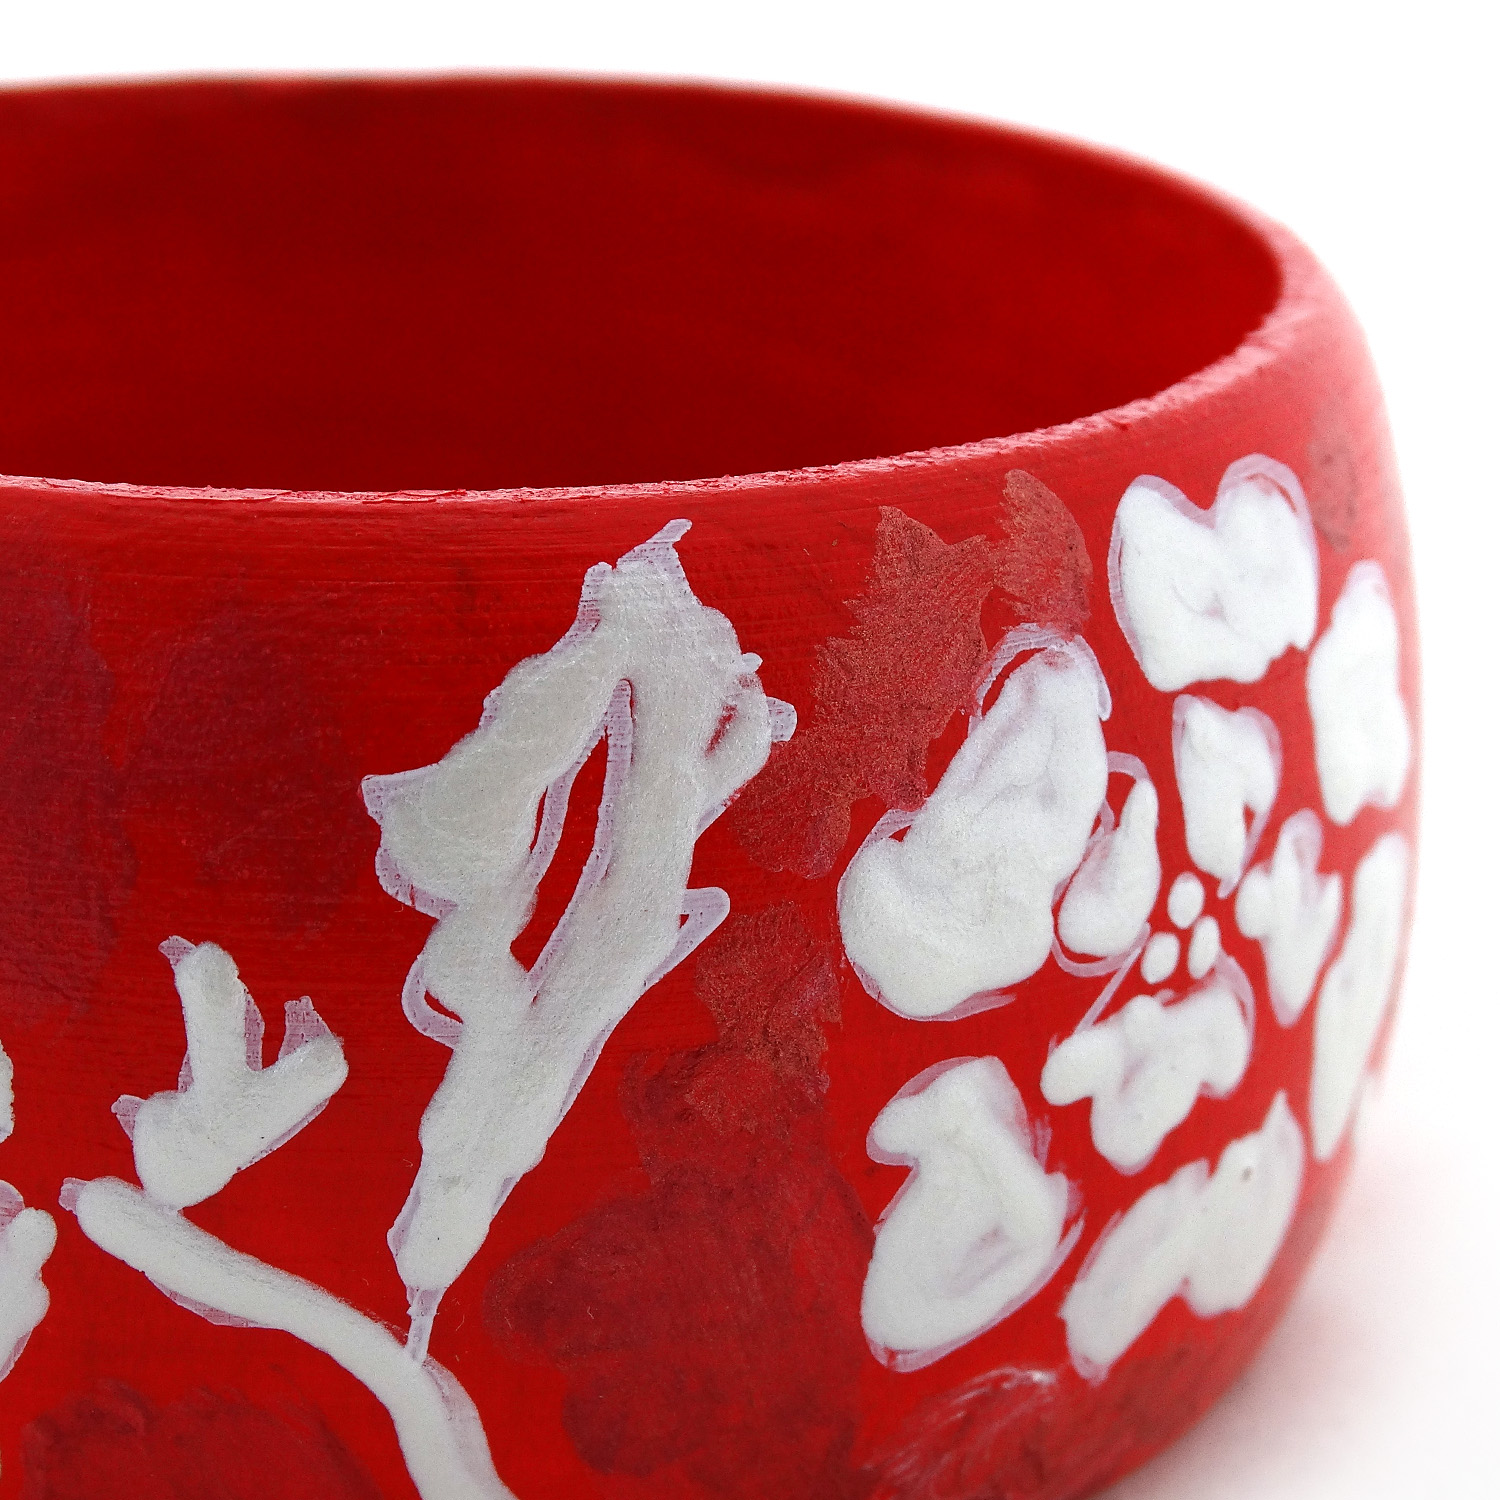 Bracciale dipinto a mano – White on red